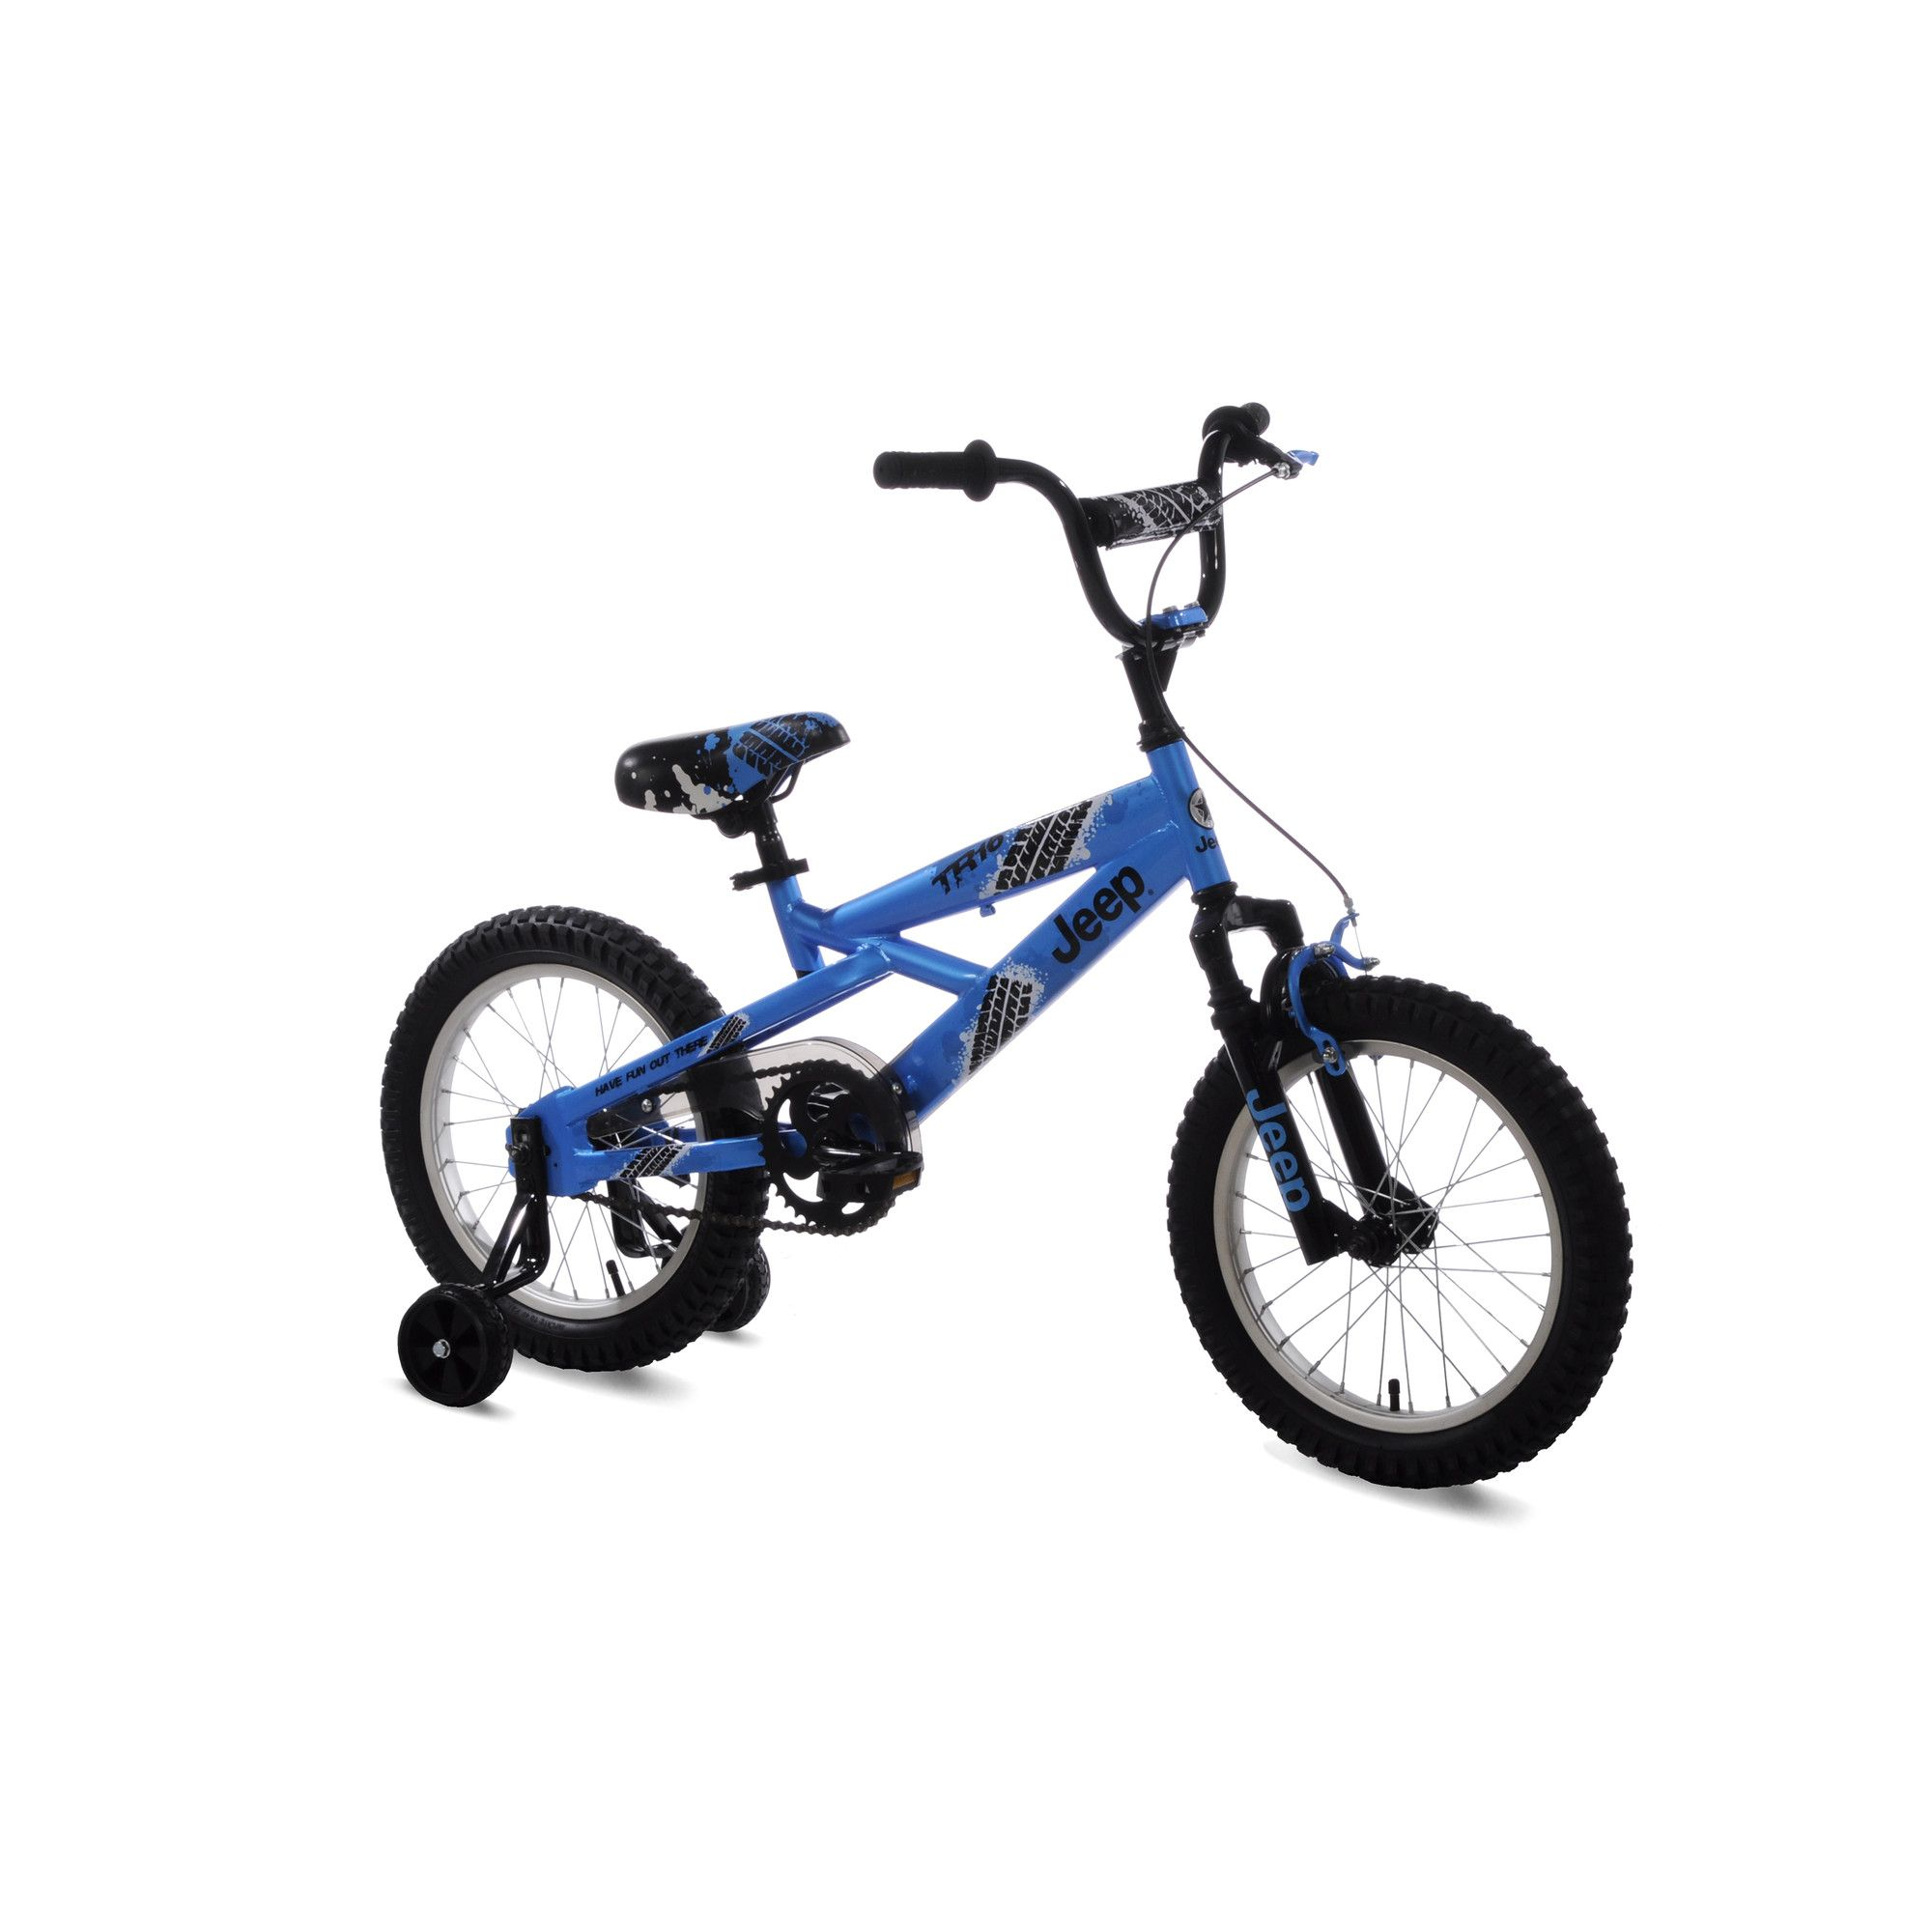 Jeep Boy S 16 Jeep Tr 16 Bike Reviews Wayfair Boy Bike